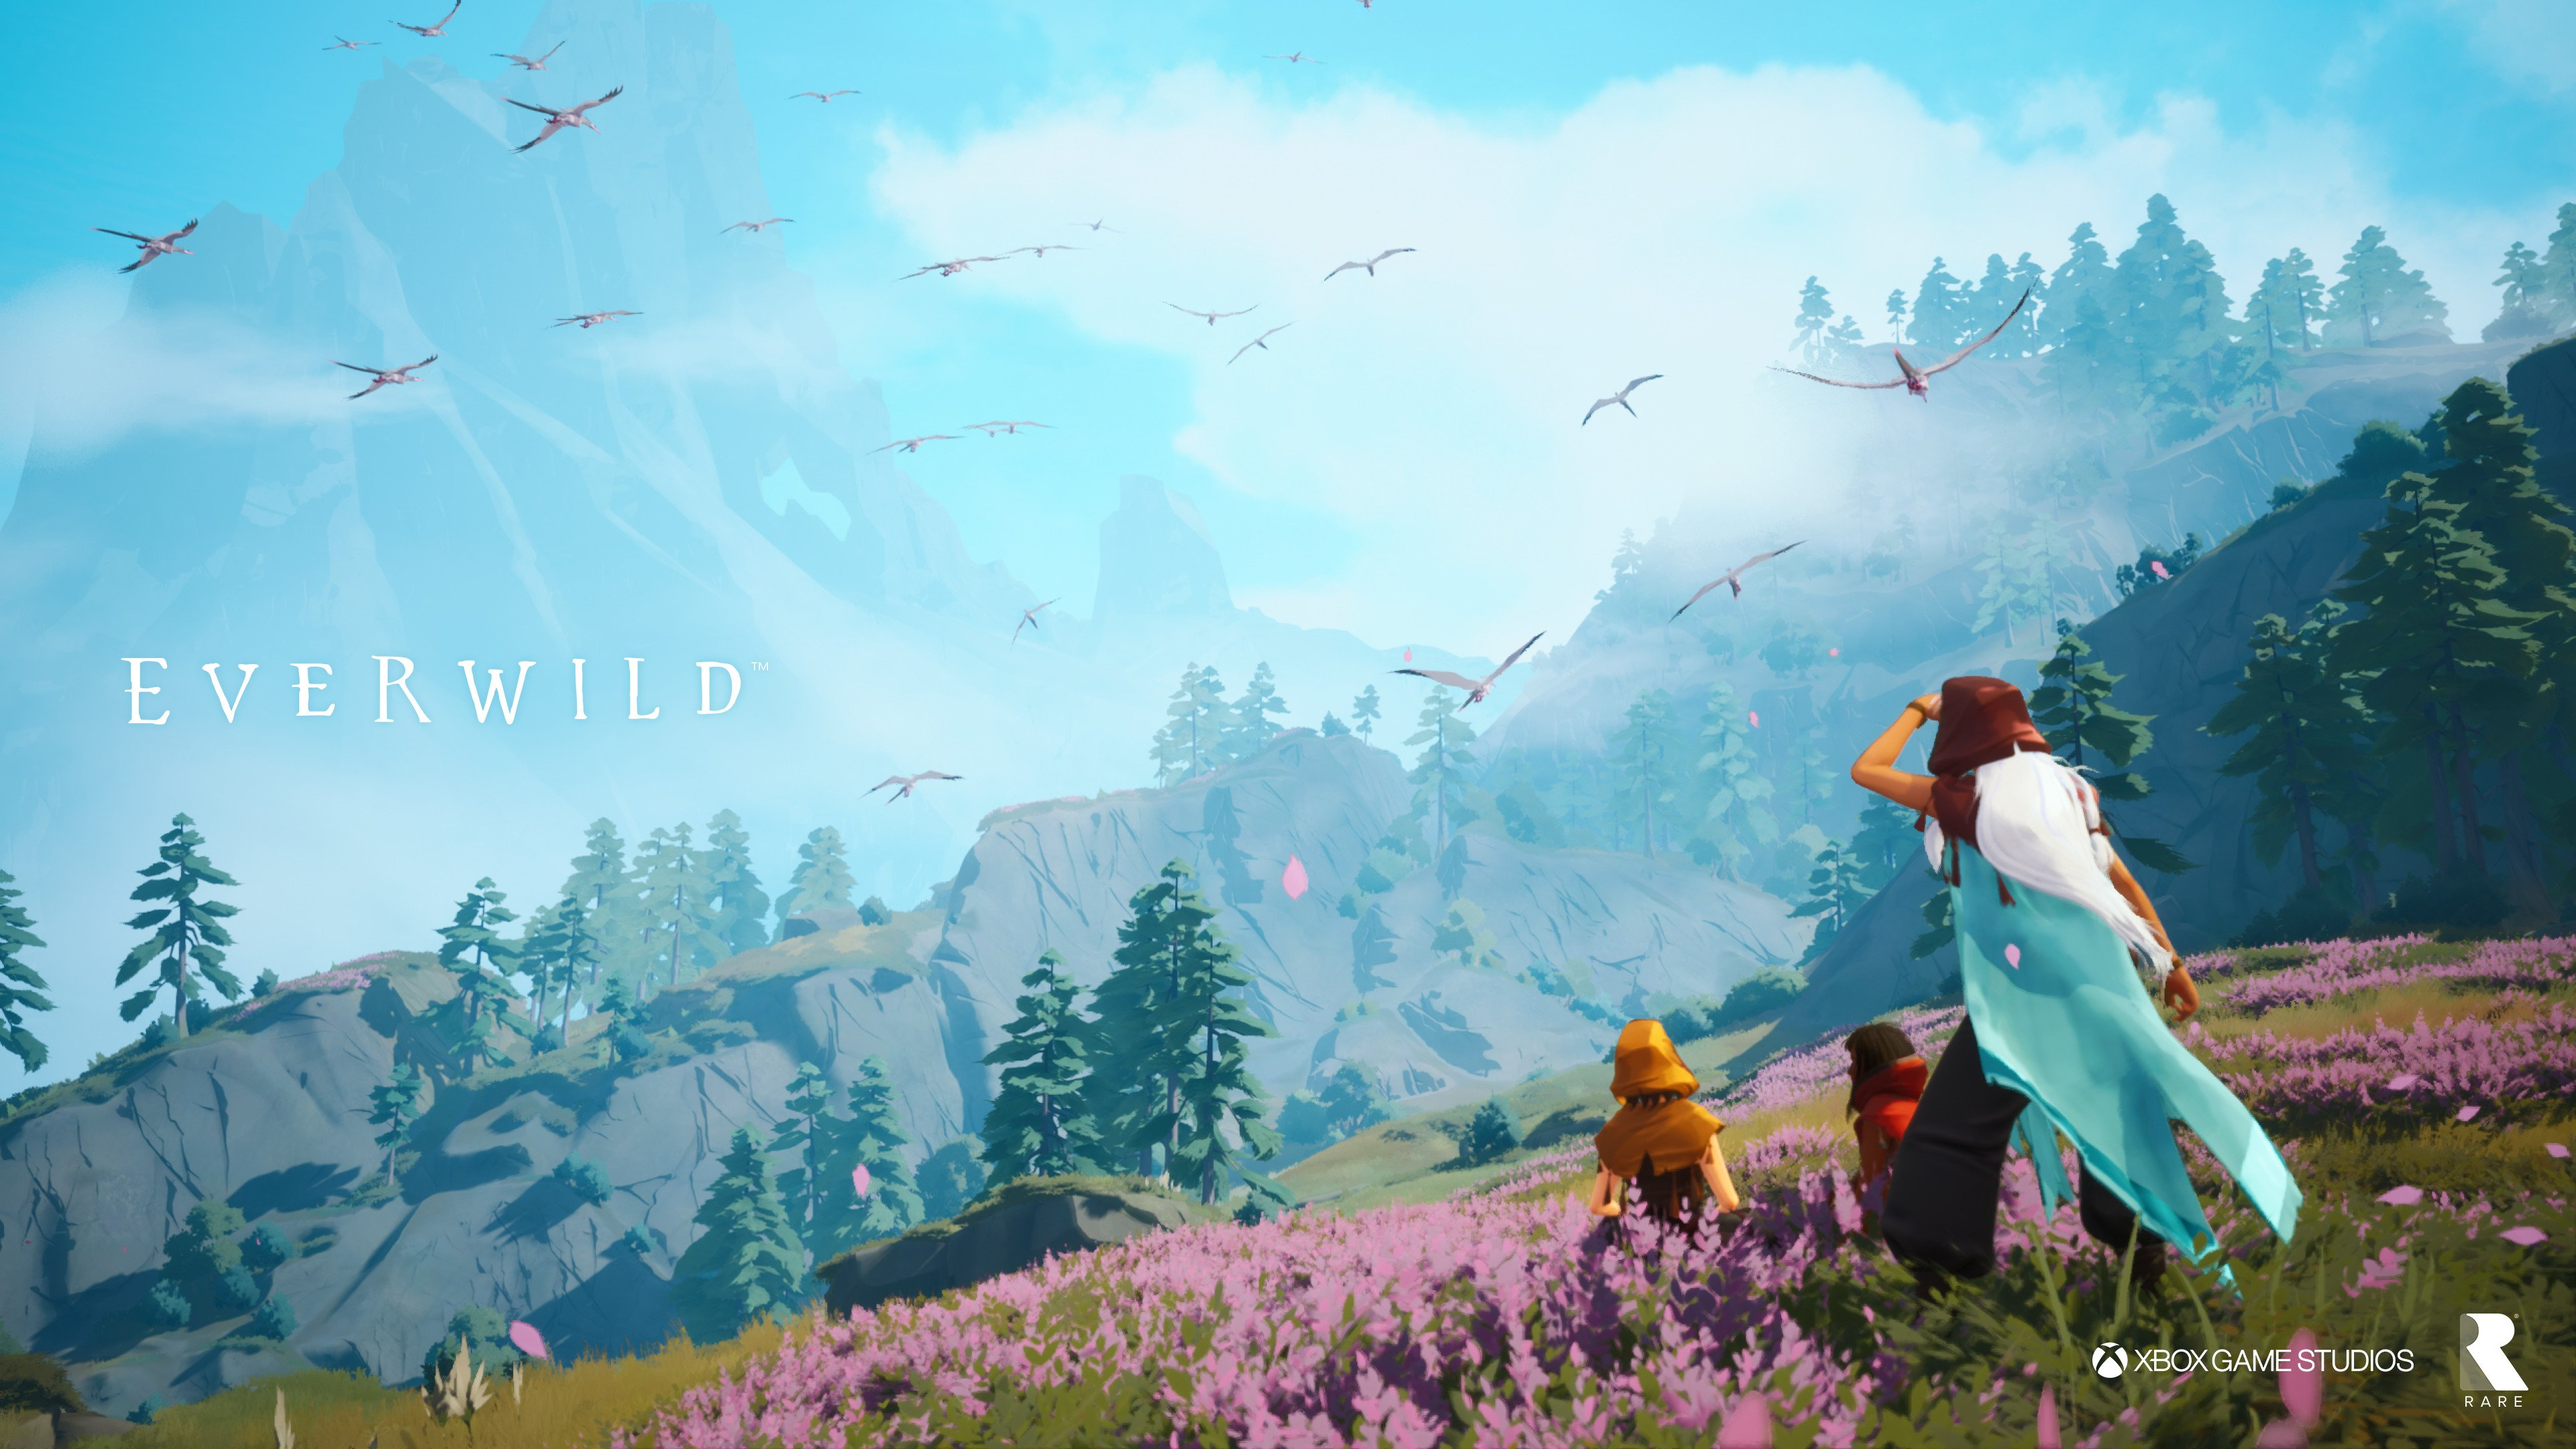 EVERWILD is Rare's new IP, gets announcement trailer